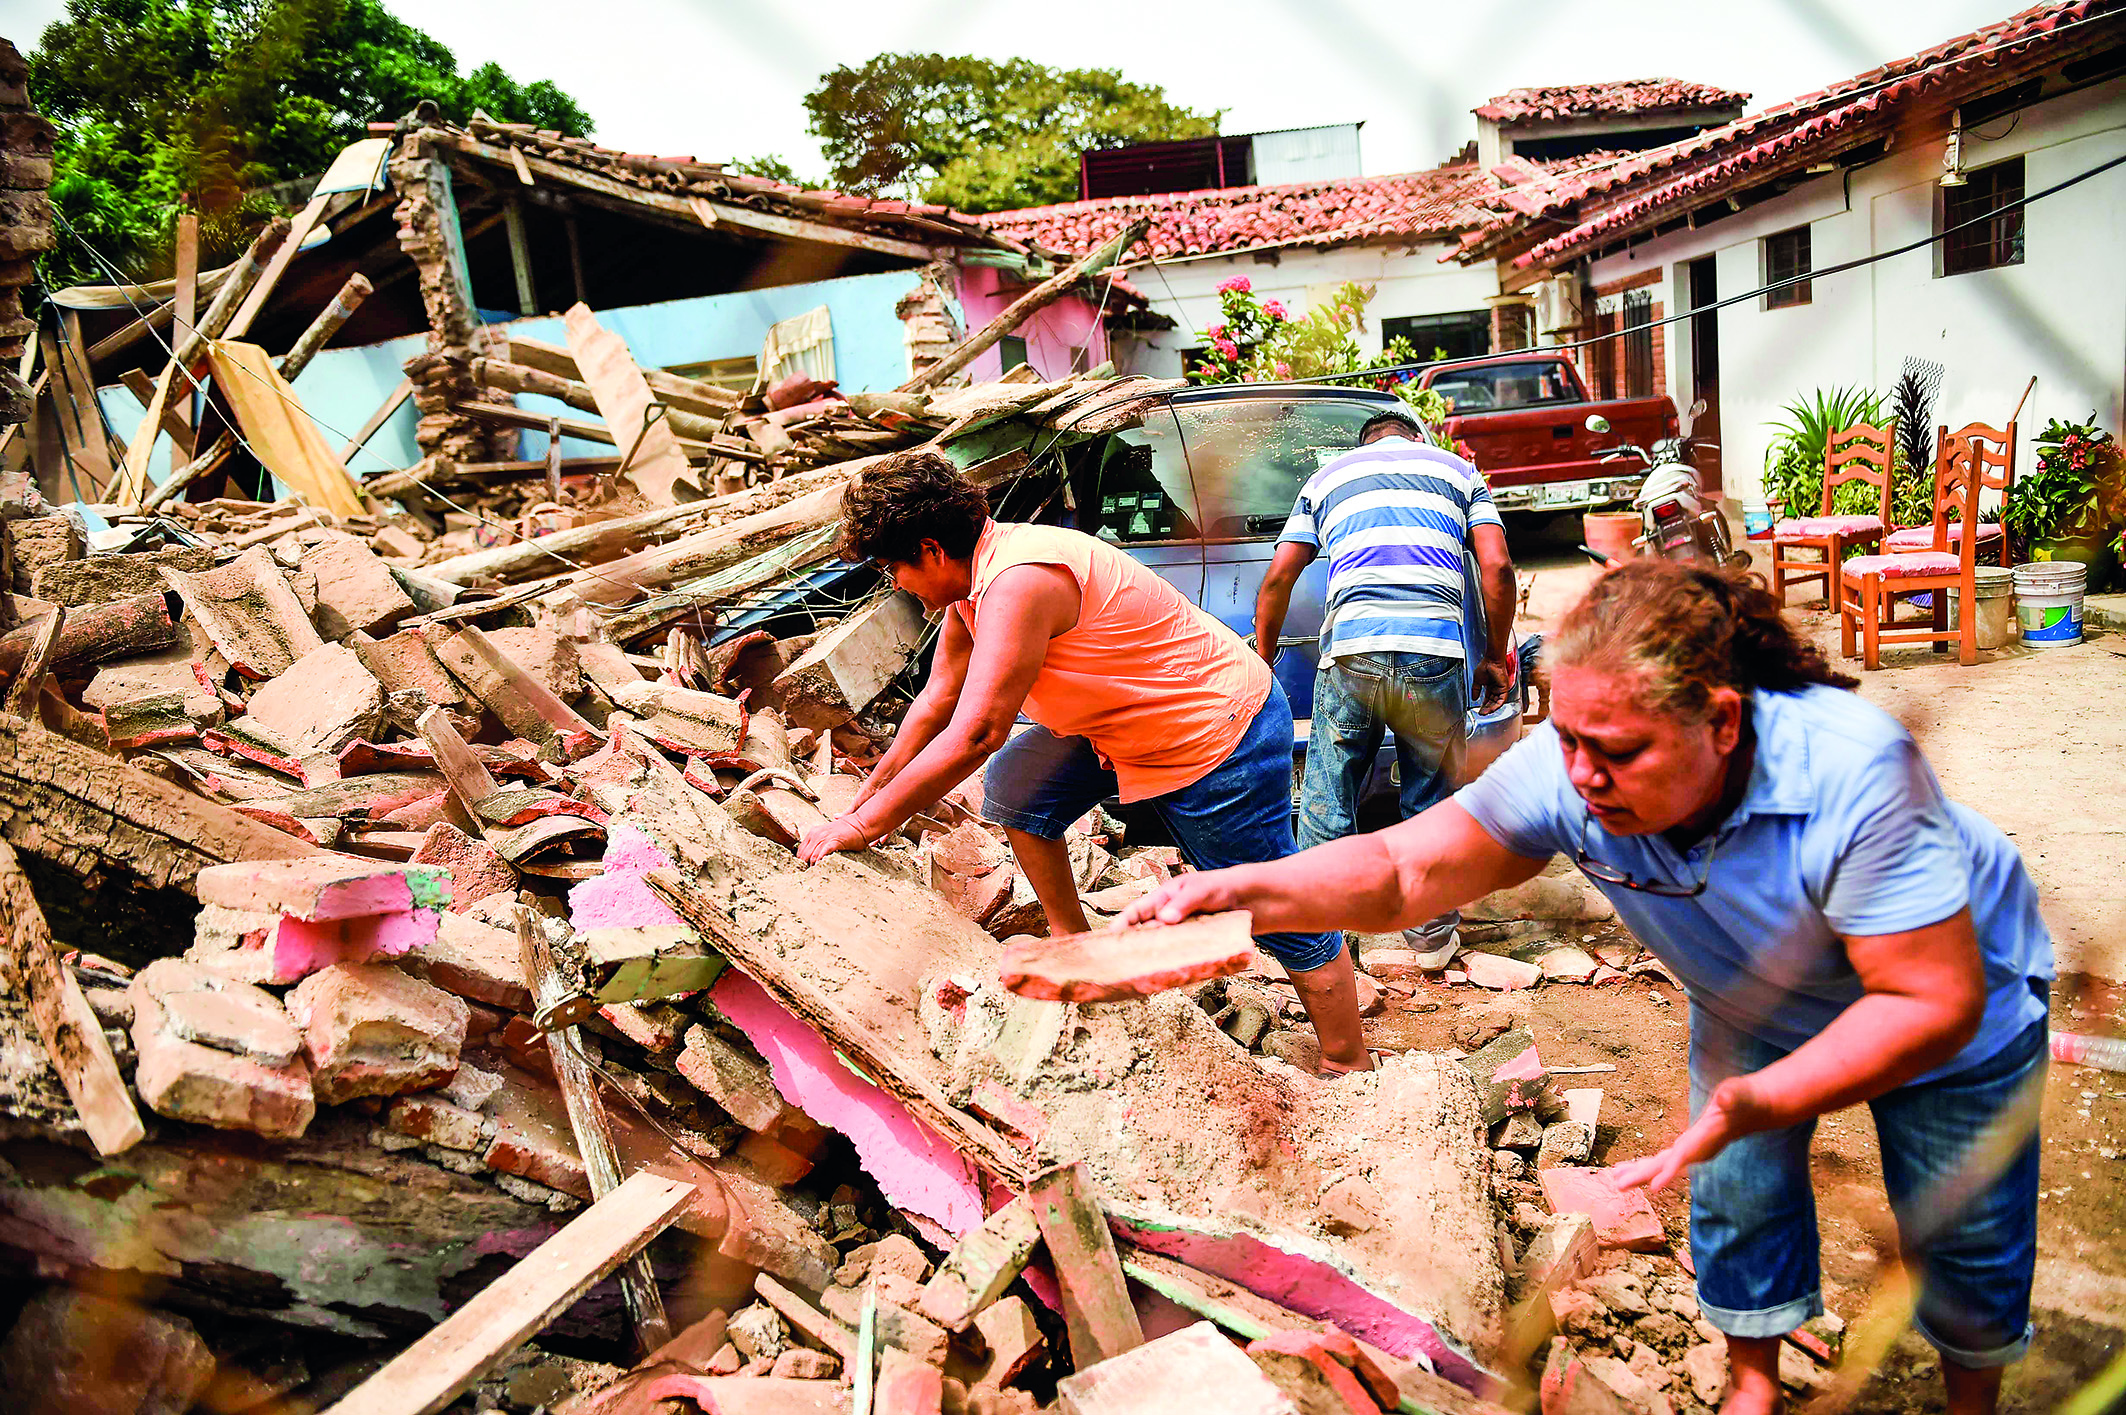 People search on September 8, 2017 amid the rubble of buildings which collapsed in Juchitan de Zaragoza, state of Oaxaca, after an 8.2 earthquake that hit Mexico's Pacific coast overnight. Mexico's most powerful earthquake in a century killed at least 35 people, officials said, after it struck the Pacific coast, wrecking homes and sending families fleeing into the streets. / AFP PHOTO / Pedro PARDO